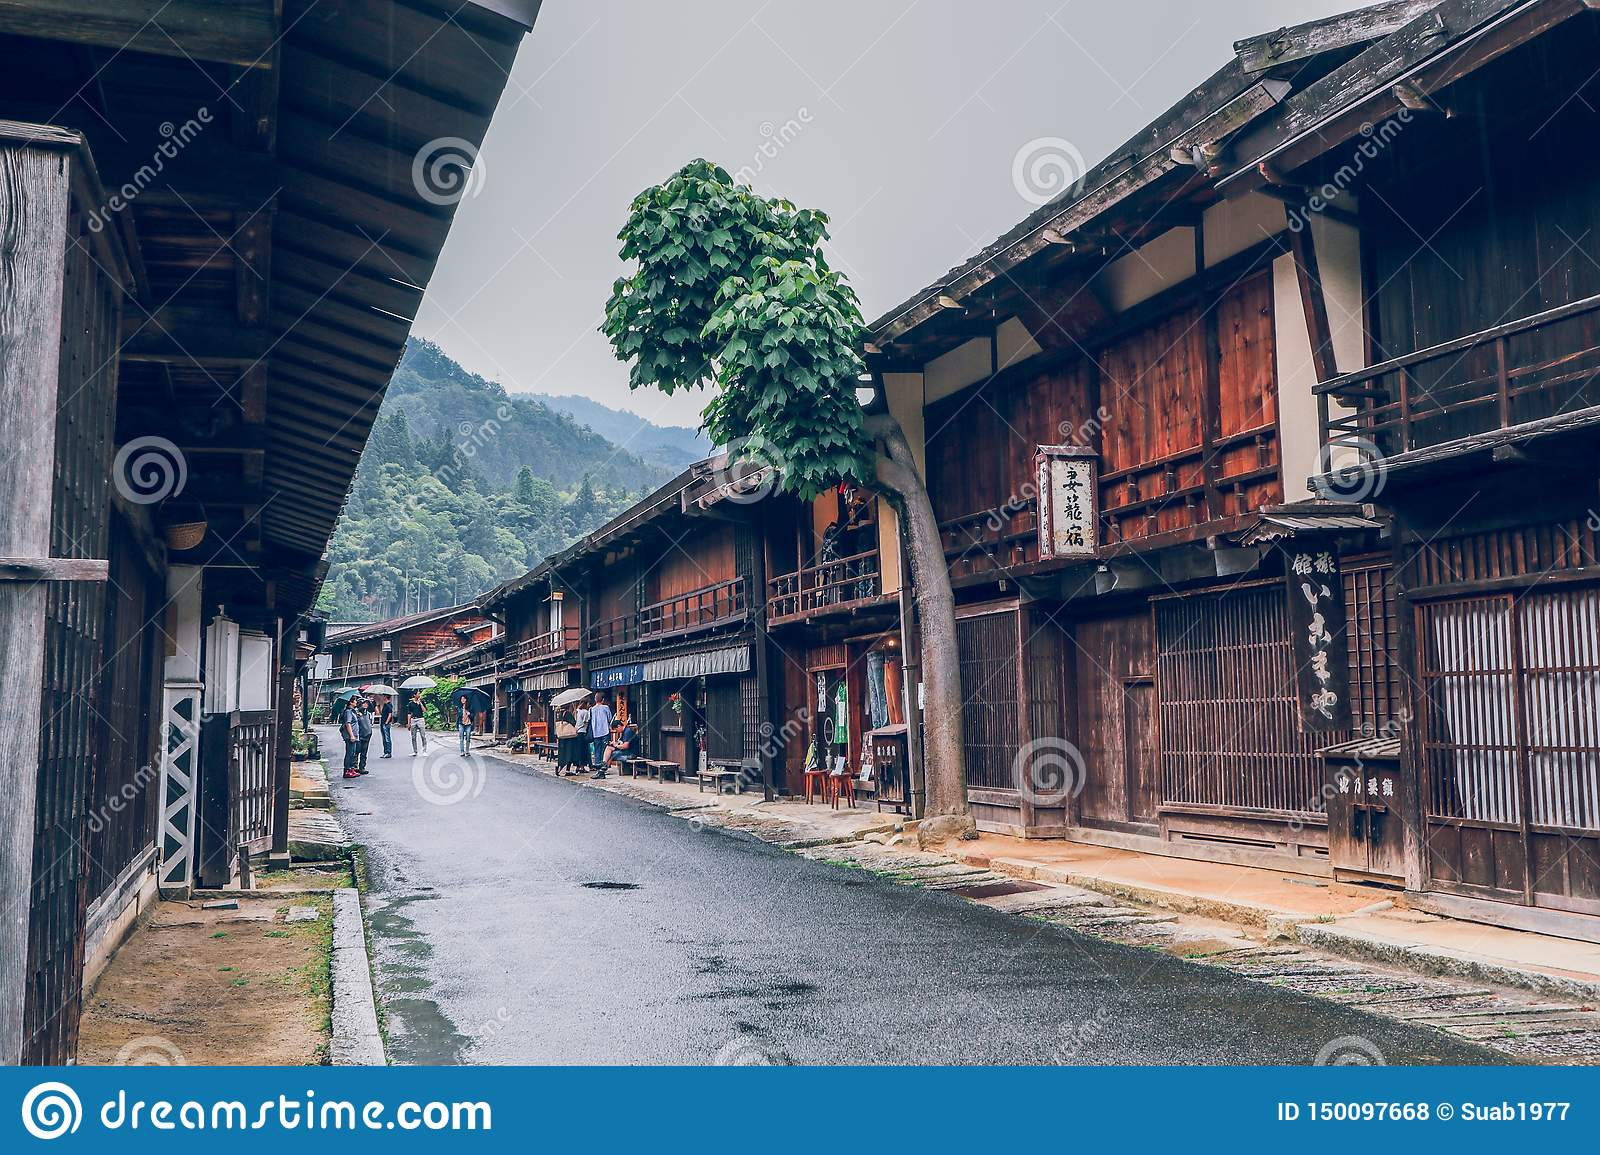 Kiso valley is the old town or Japanese traditional wooden houses for the travelers walking at historic old street in Narai-juku